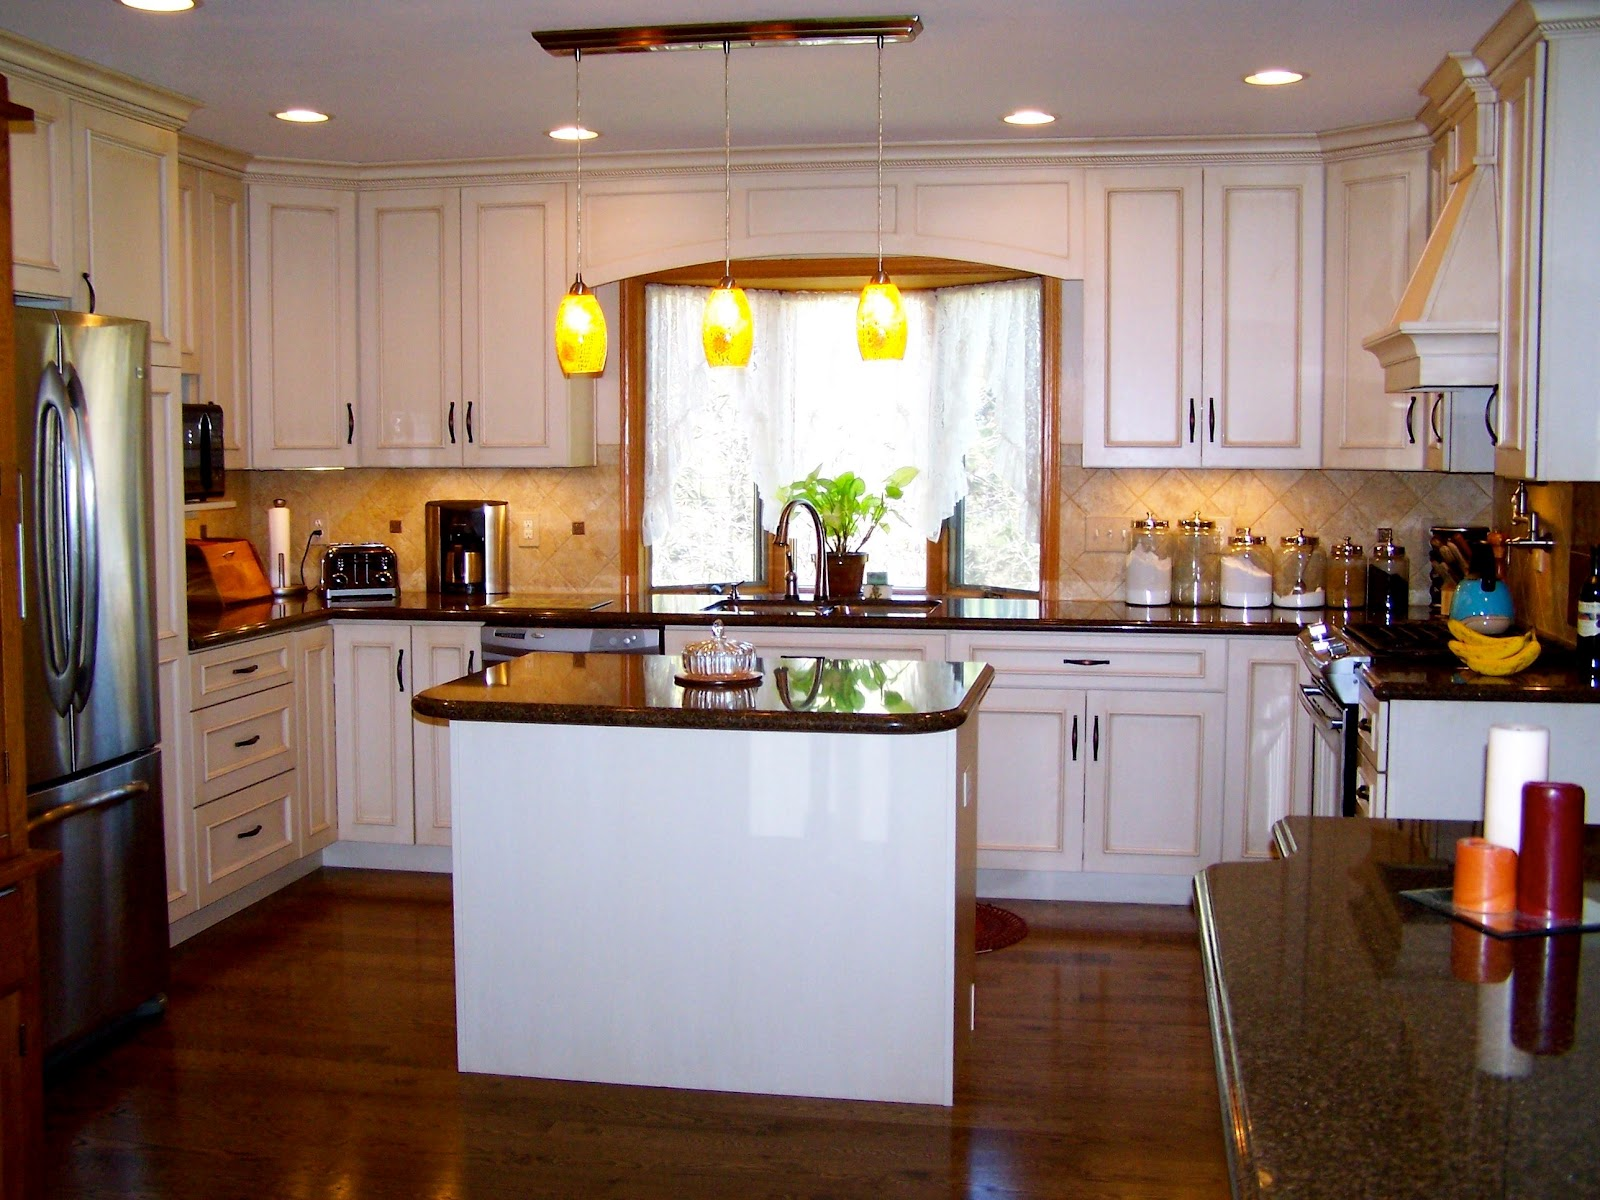 new kitchen cabinet doors cost kitchen cabinet options install